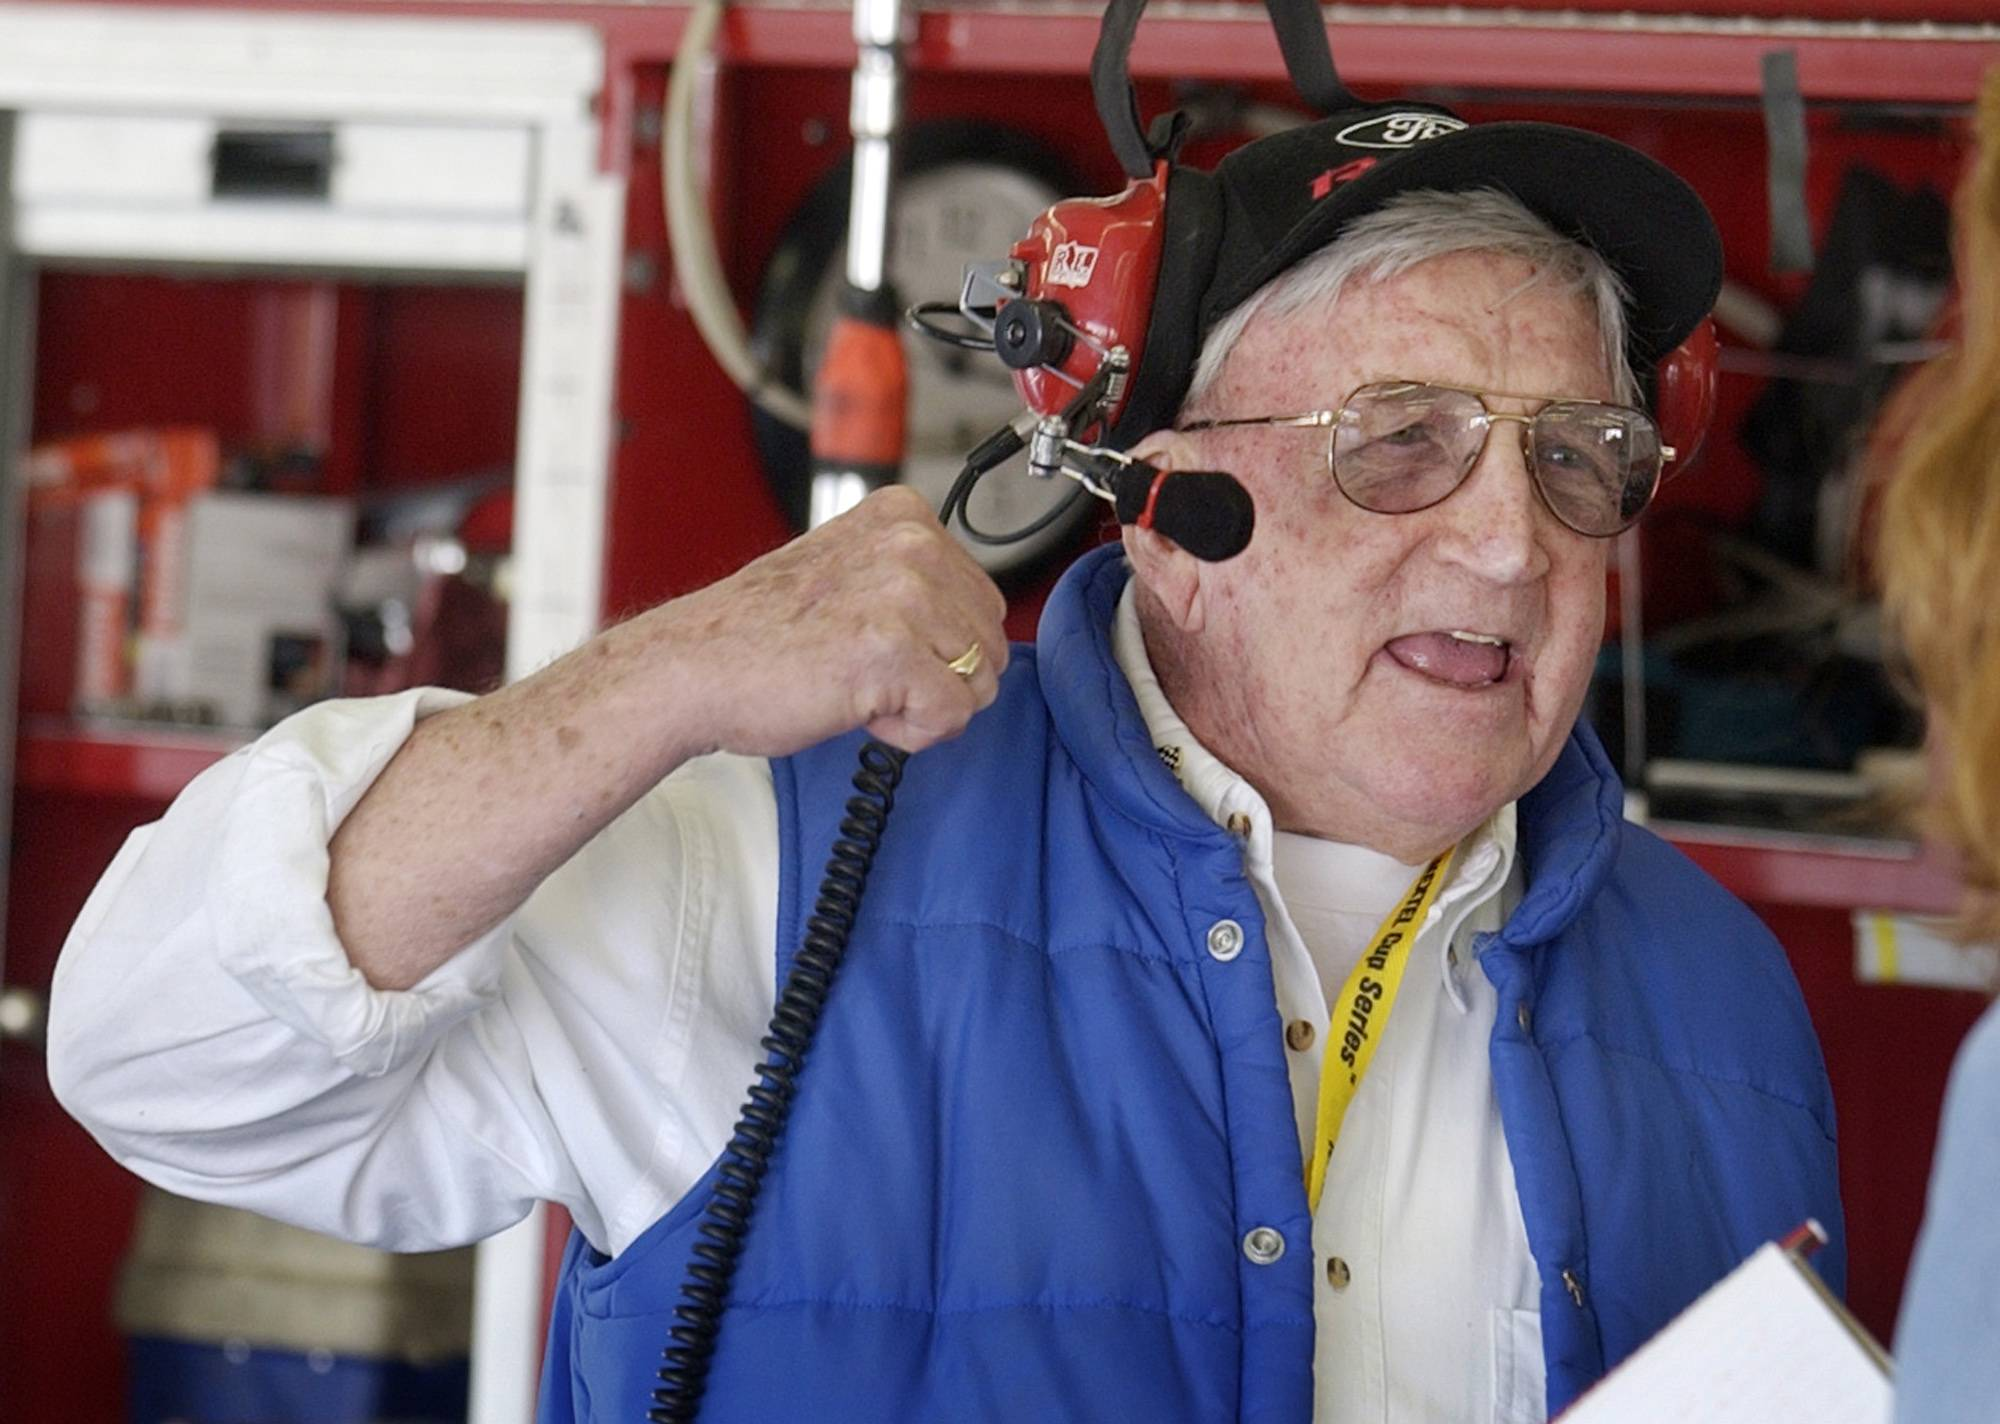 Junie Donlavey makes a point during an interview at Daytona International Speedway in Daytona Beach, Fla.